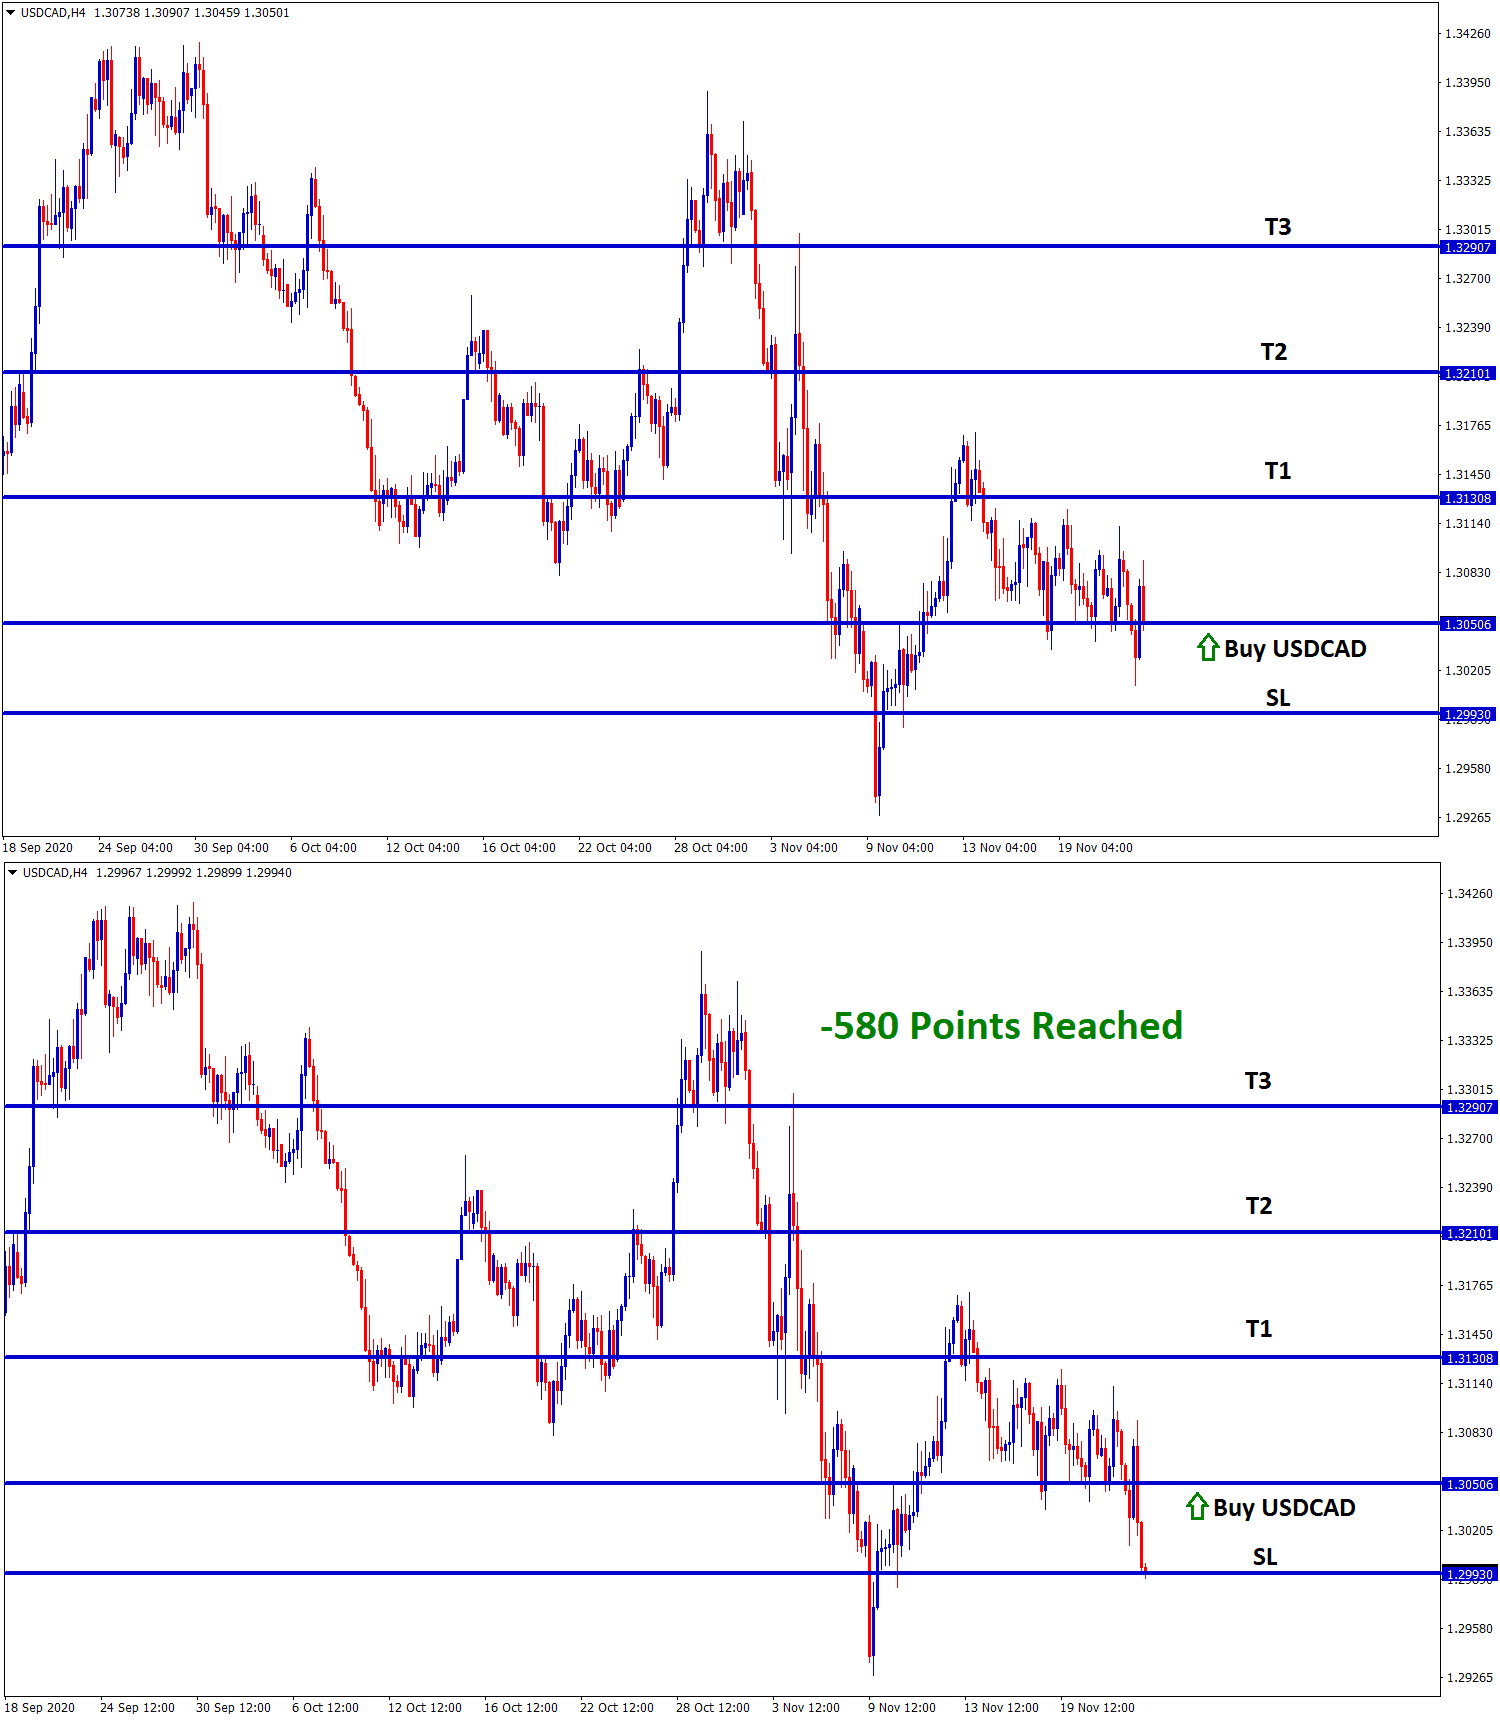 usdcad reach 580 points loss